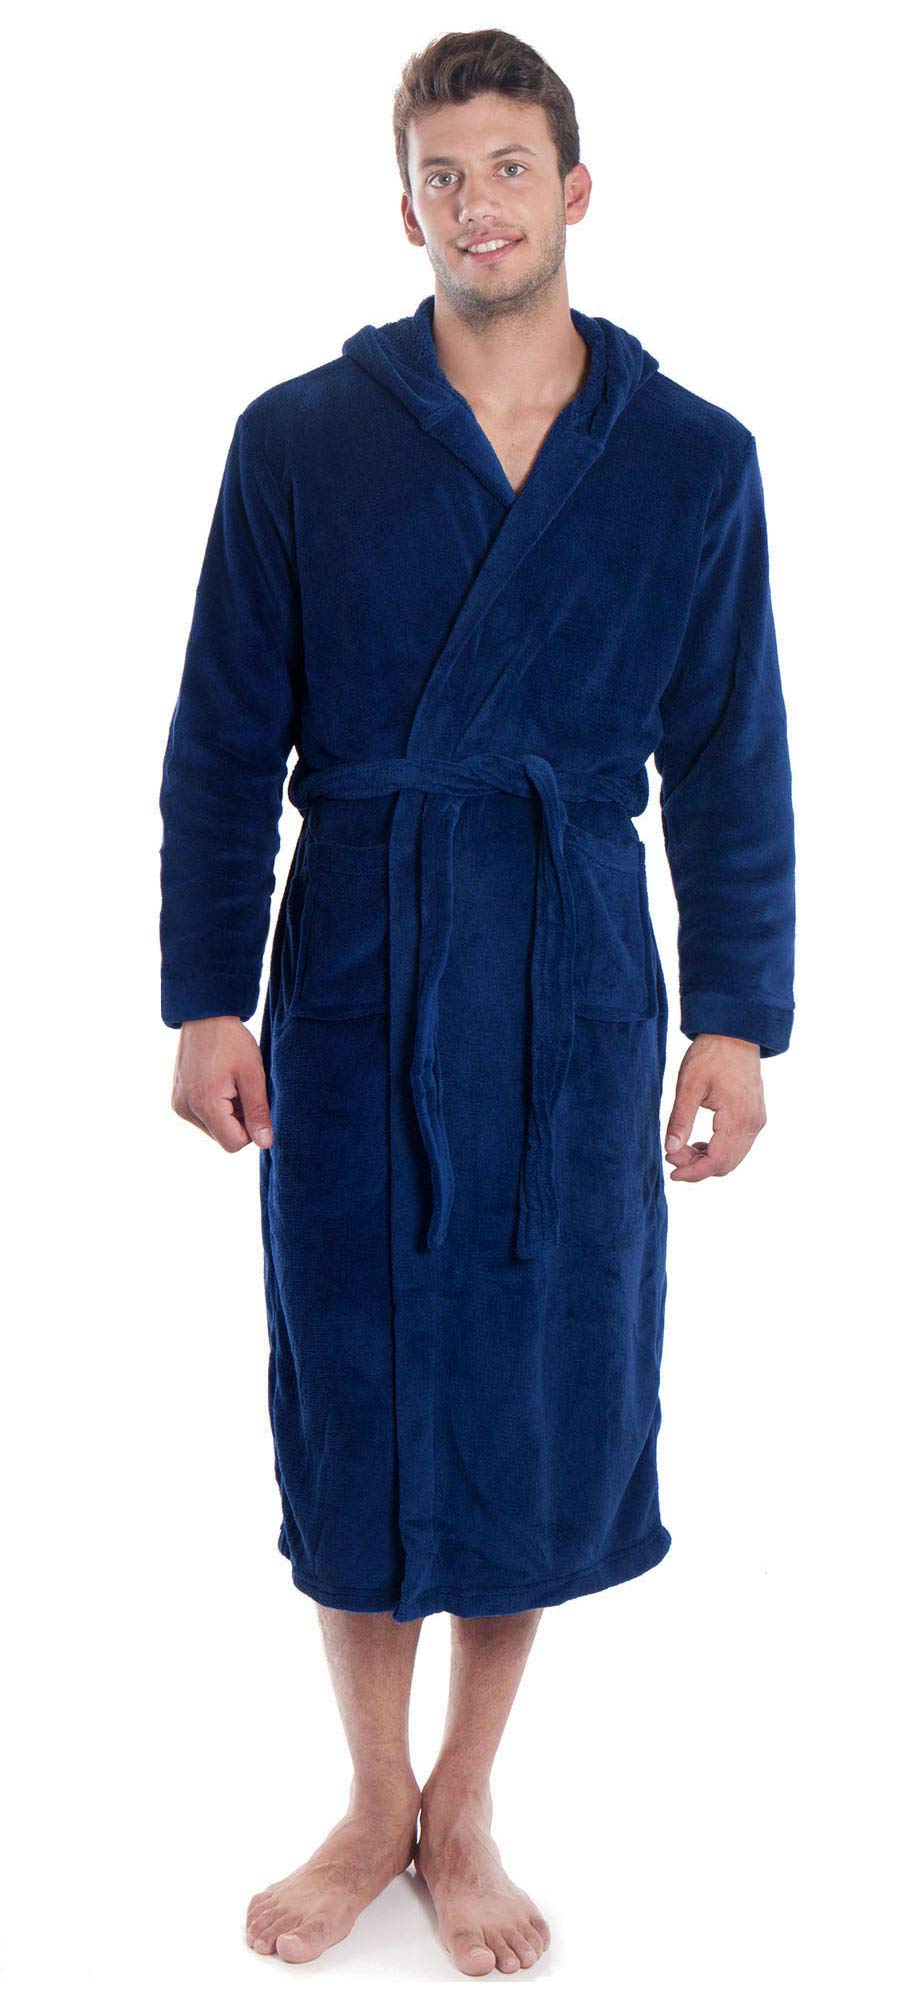 Simplicity Men s Plush Warm Long Hooded Bathrobe Kimono Robe eceeb2765